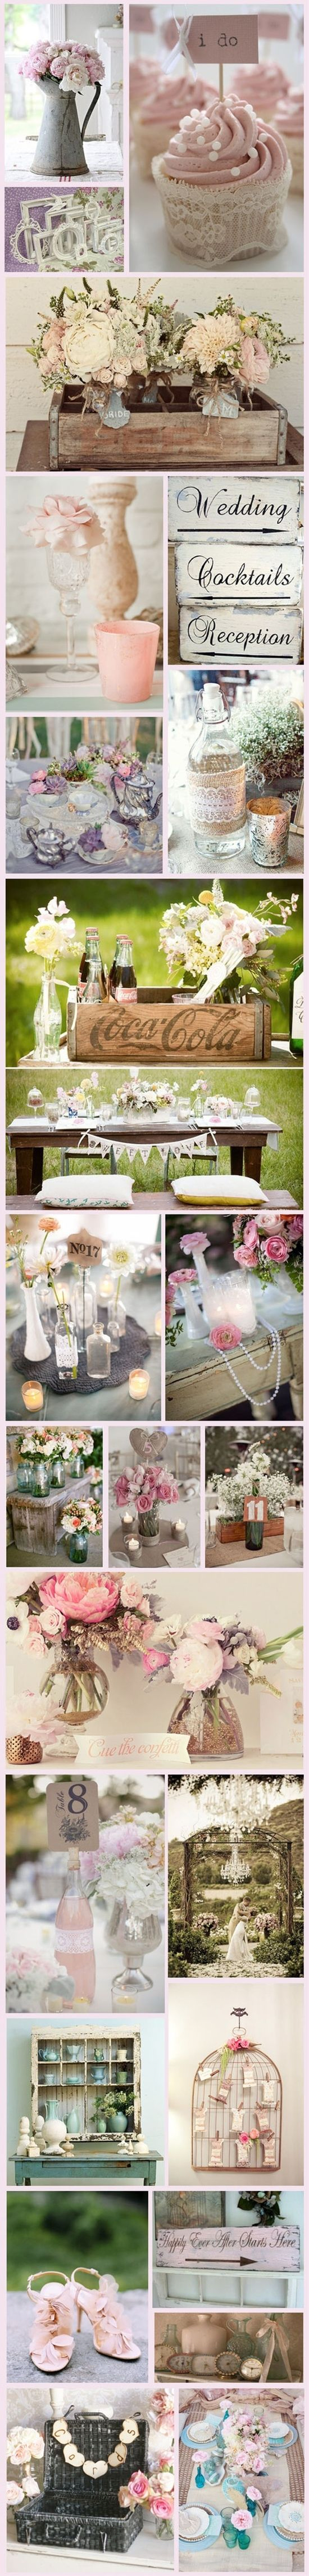 Vintage/Shabby chic wedding ideas